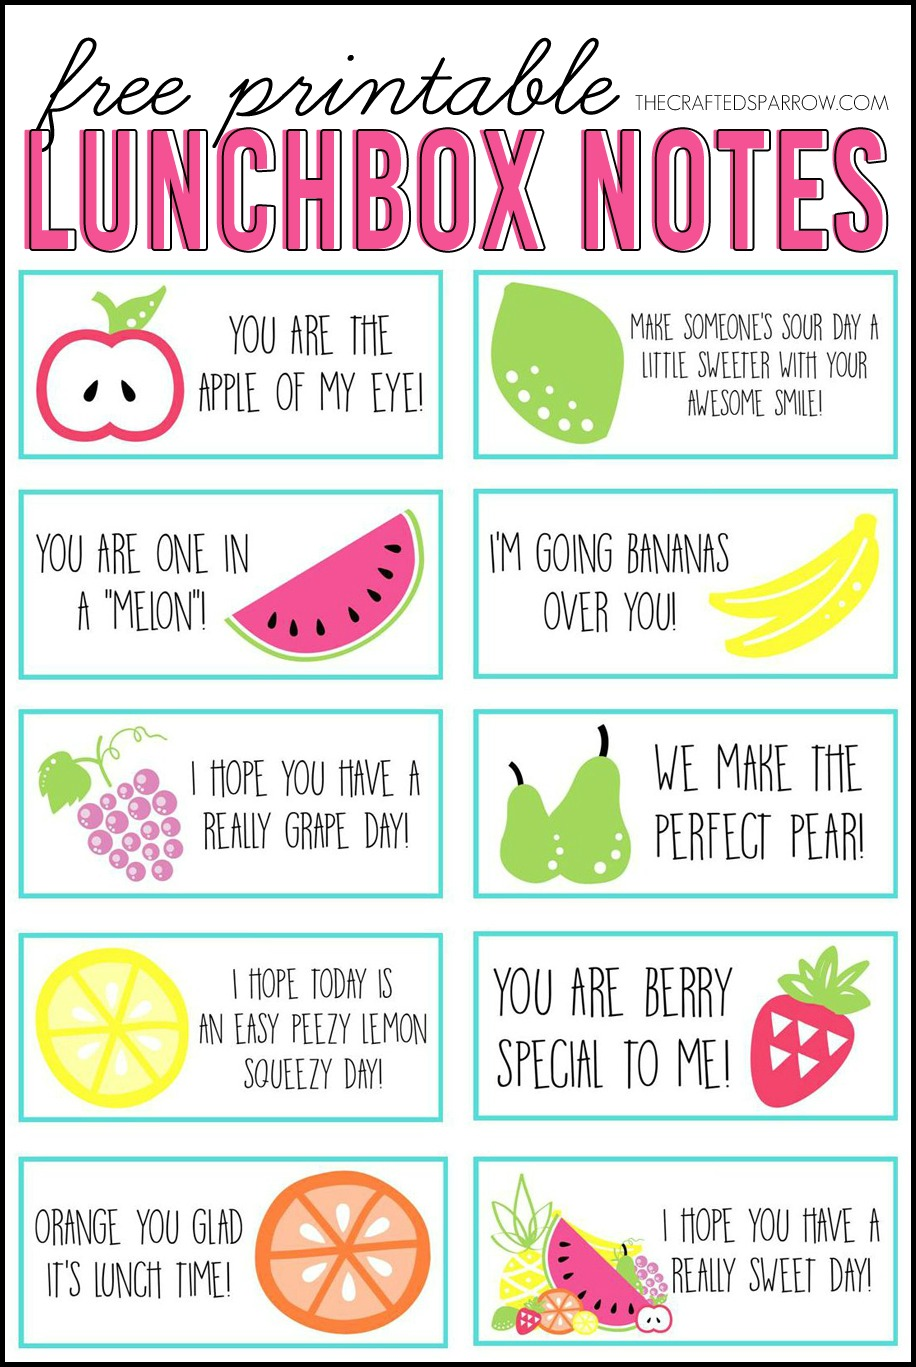 picture regarding Lunch Box Jokes Printable known as No cost Printable Lunchbox Notes